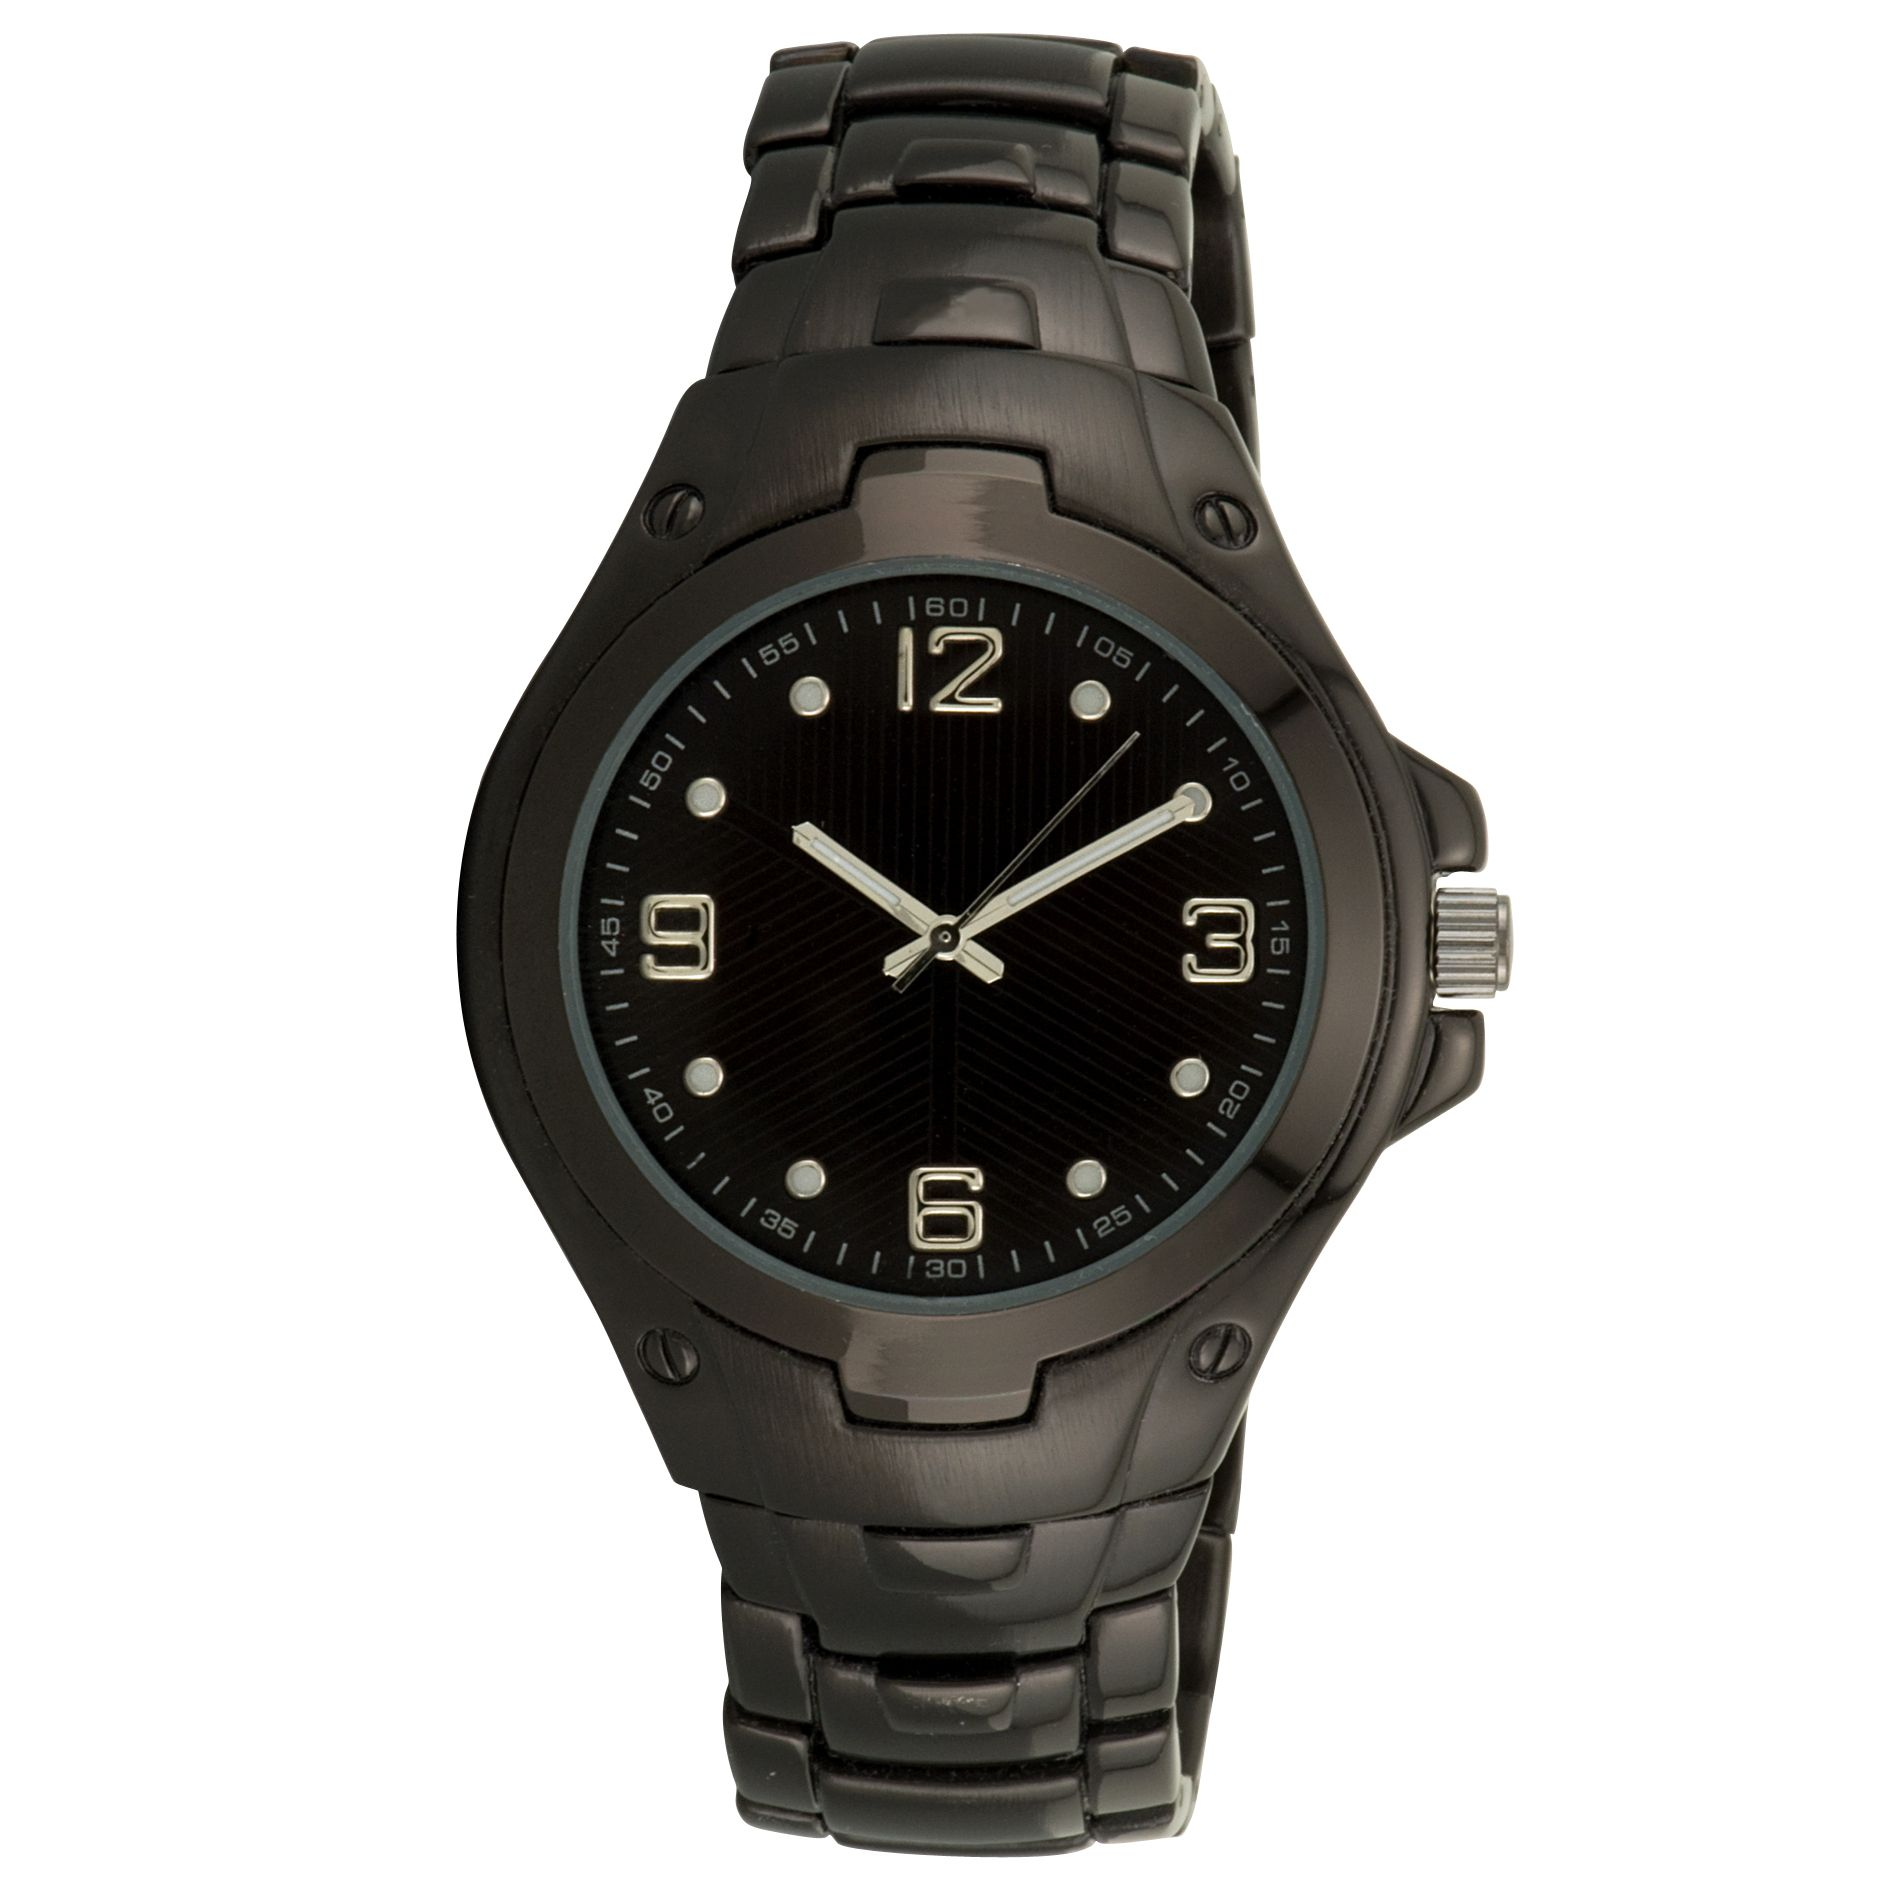 Mens Watch with Round Gunmetal Case, Luminous Black Dial and Expansion Band                                                      at mygofer.com